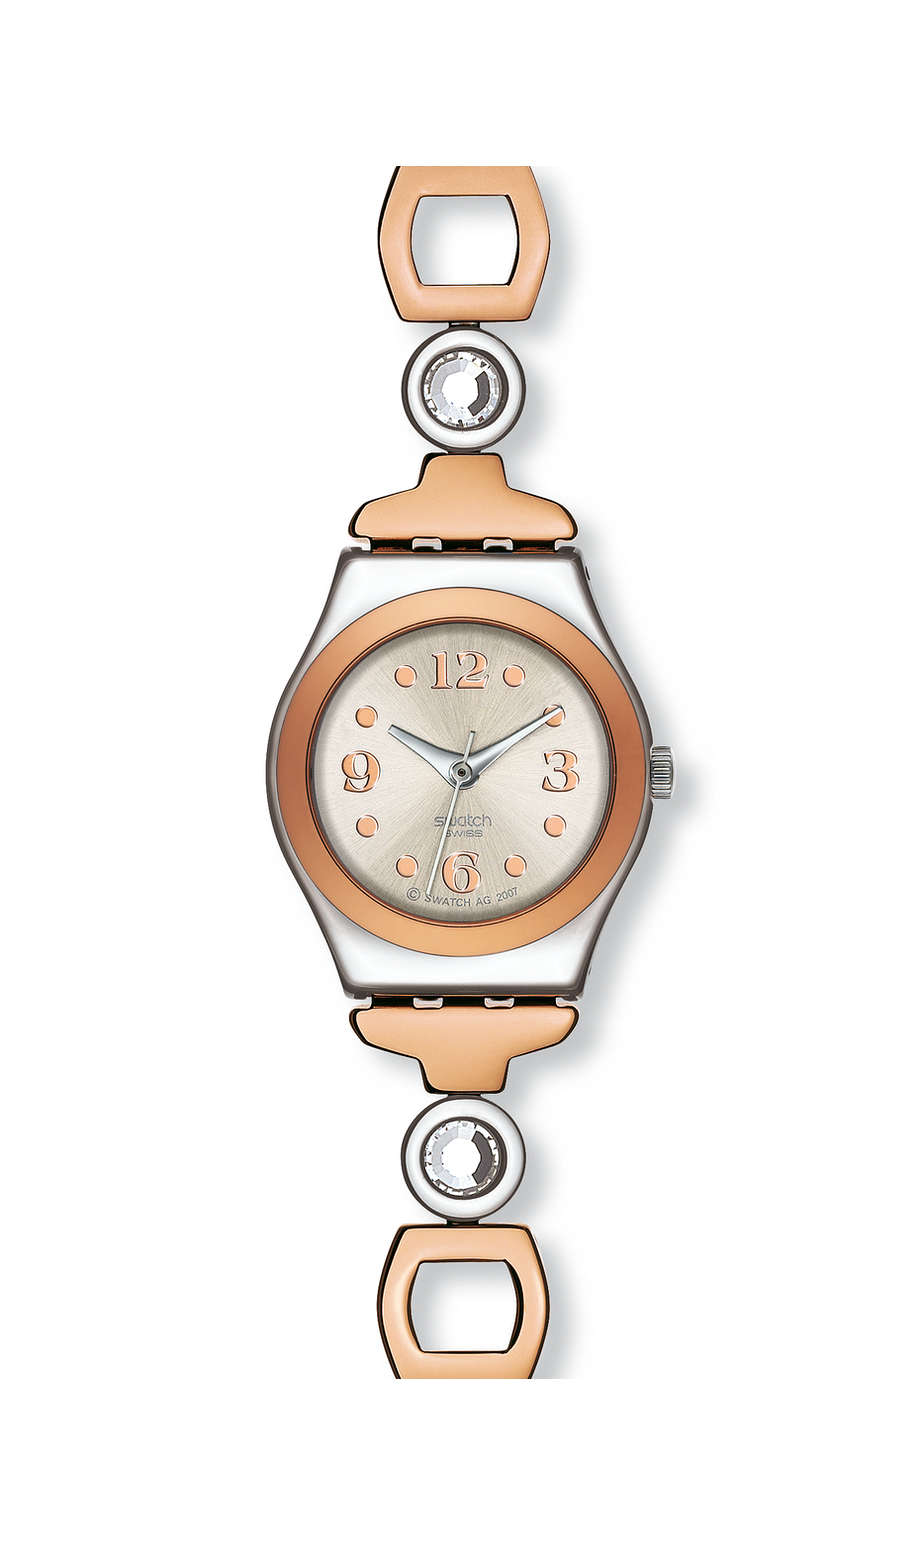 Swatch - LADY PASSION - 1